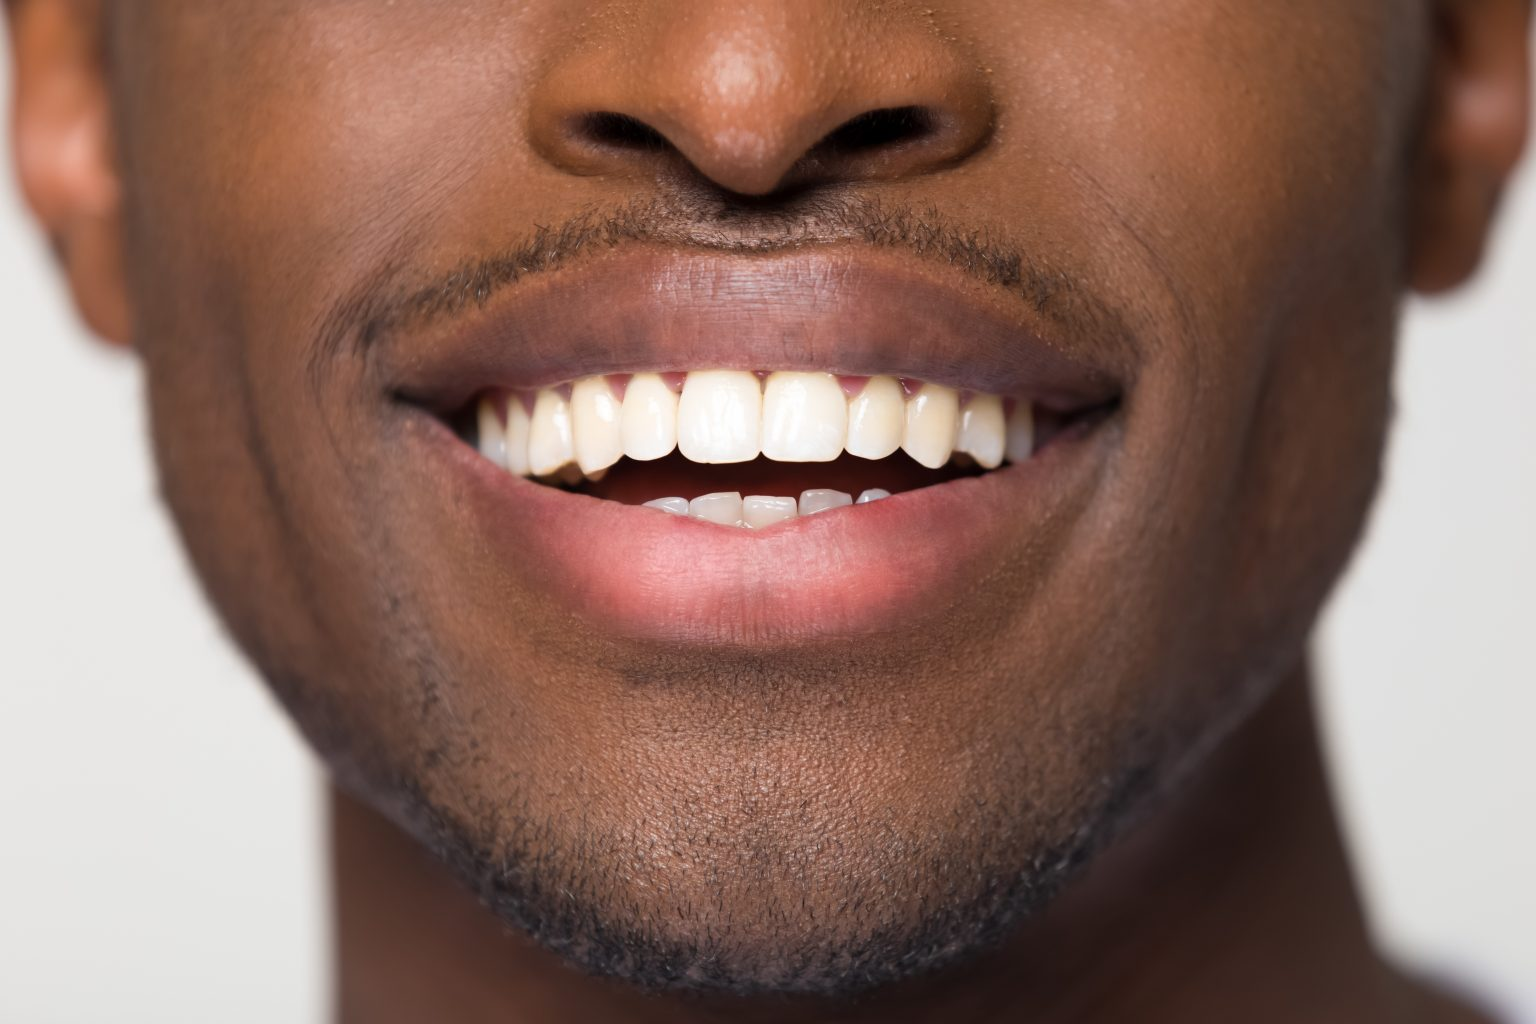 Close Up View Of Beaming Orthodontic White Wide Male Smile